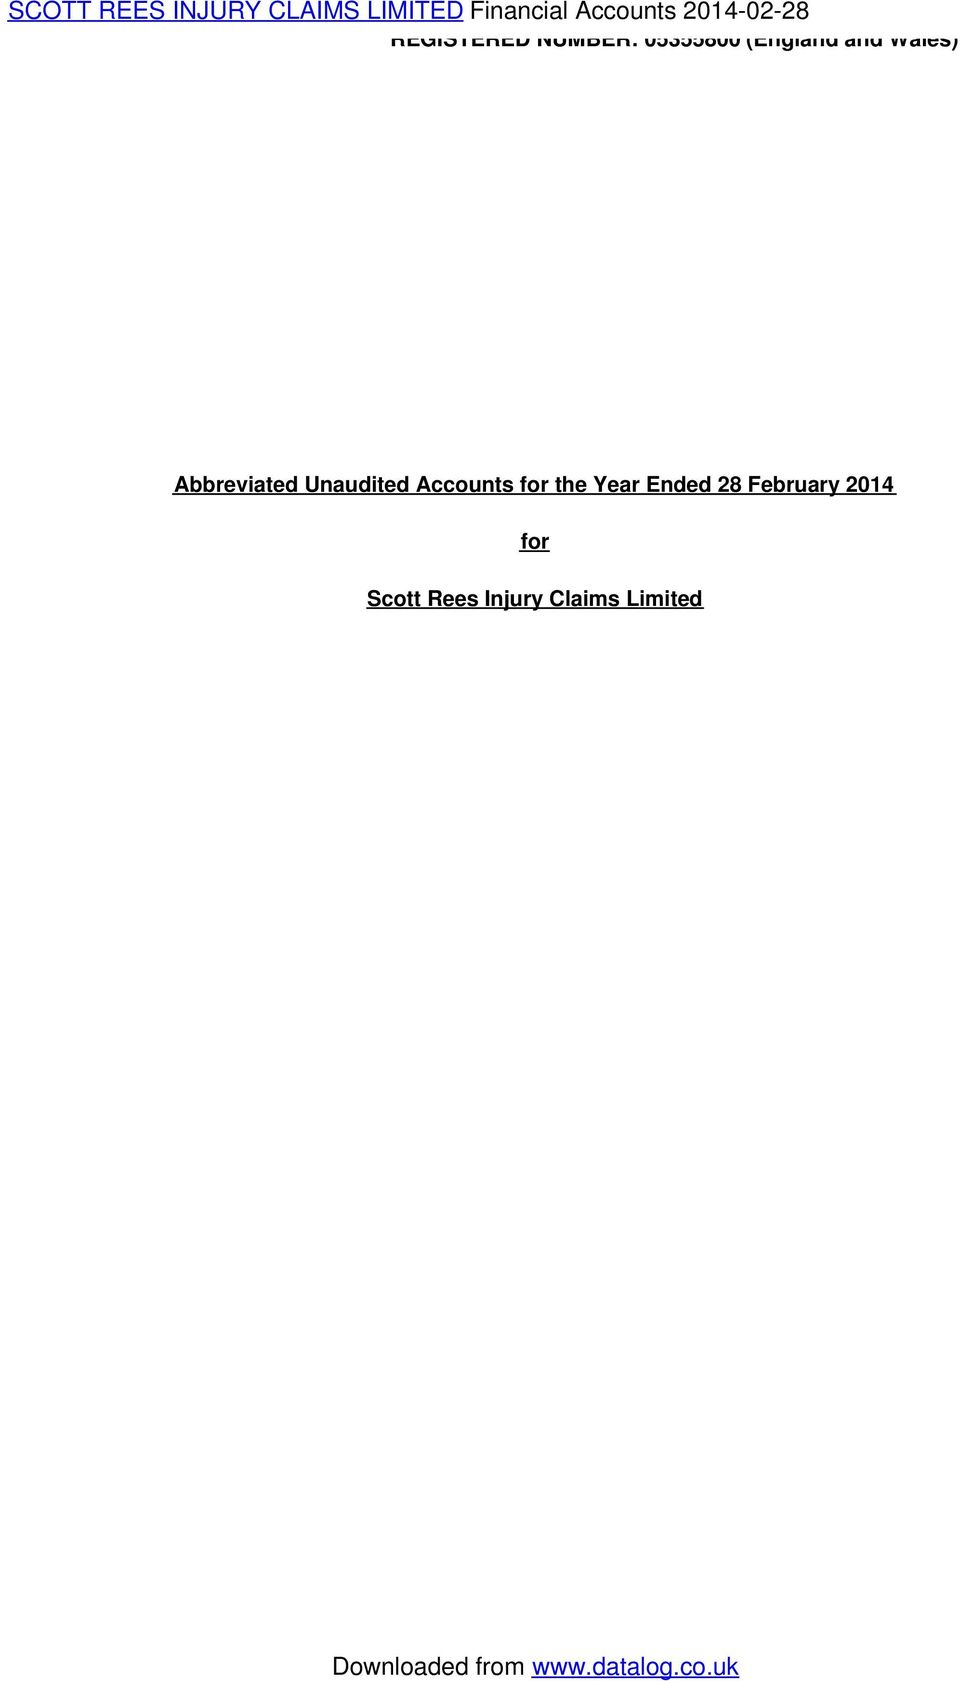 Wales) Abbreviated Unaudited Accounts for the Year